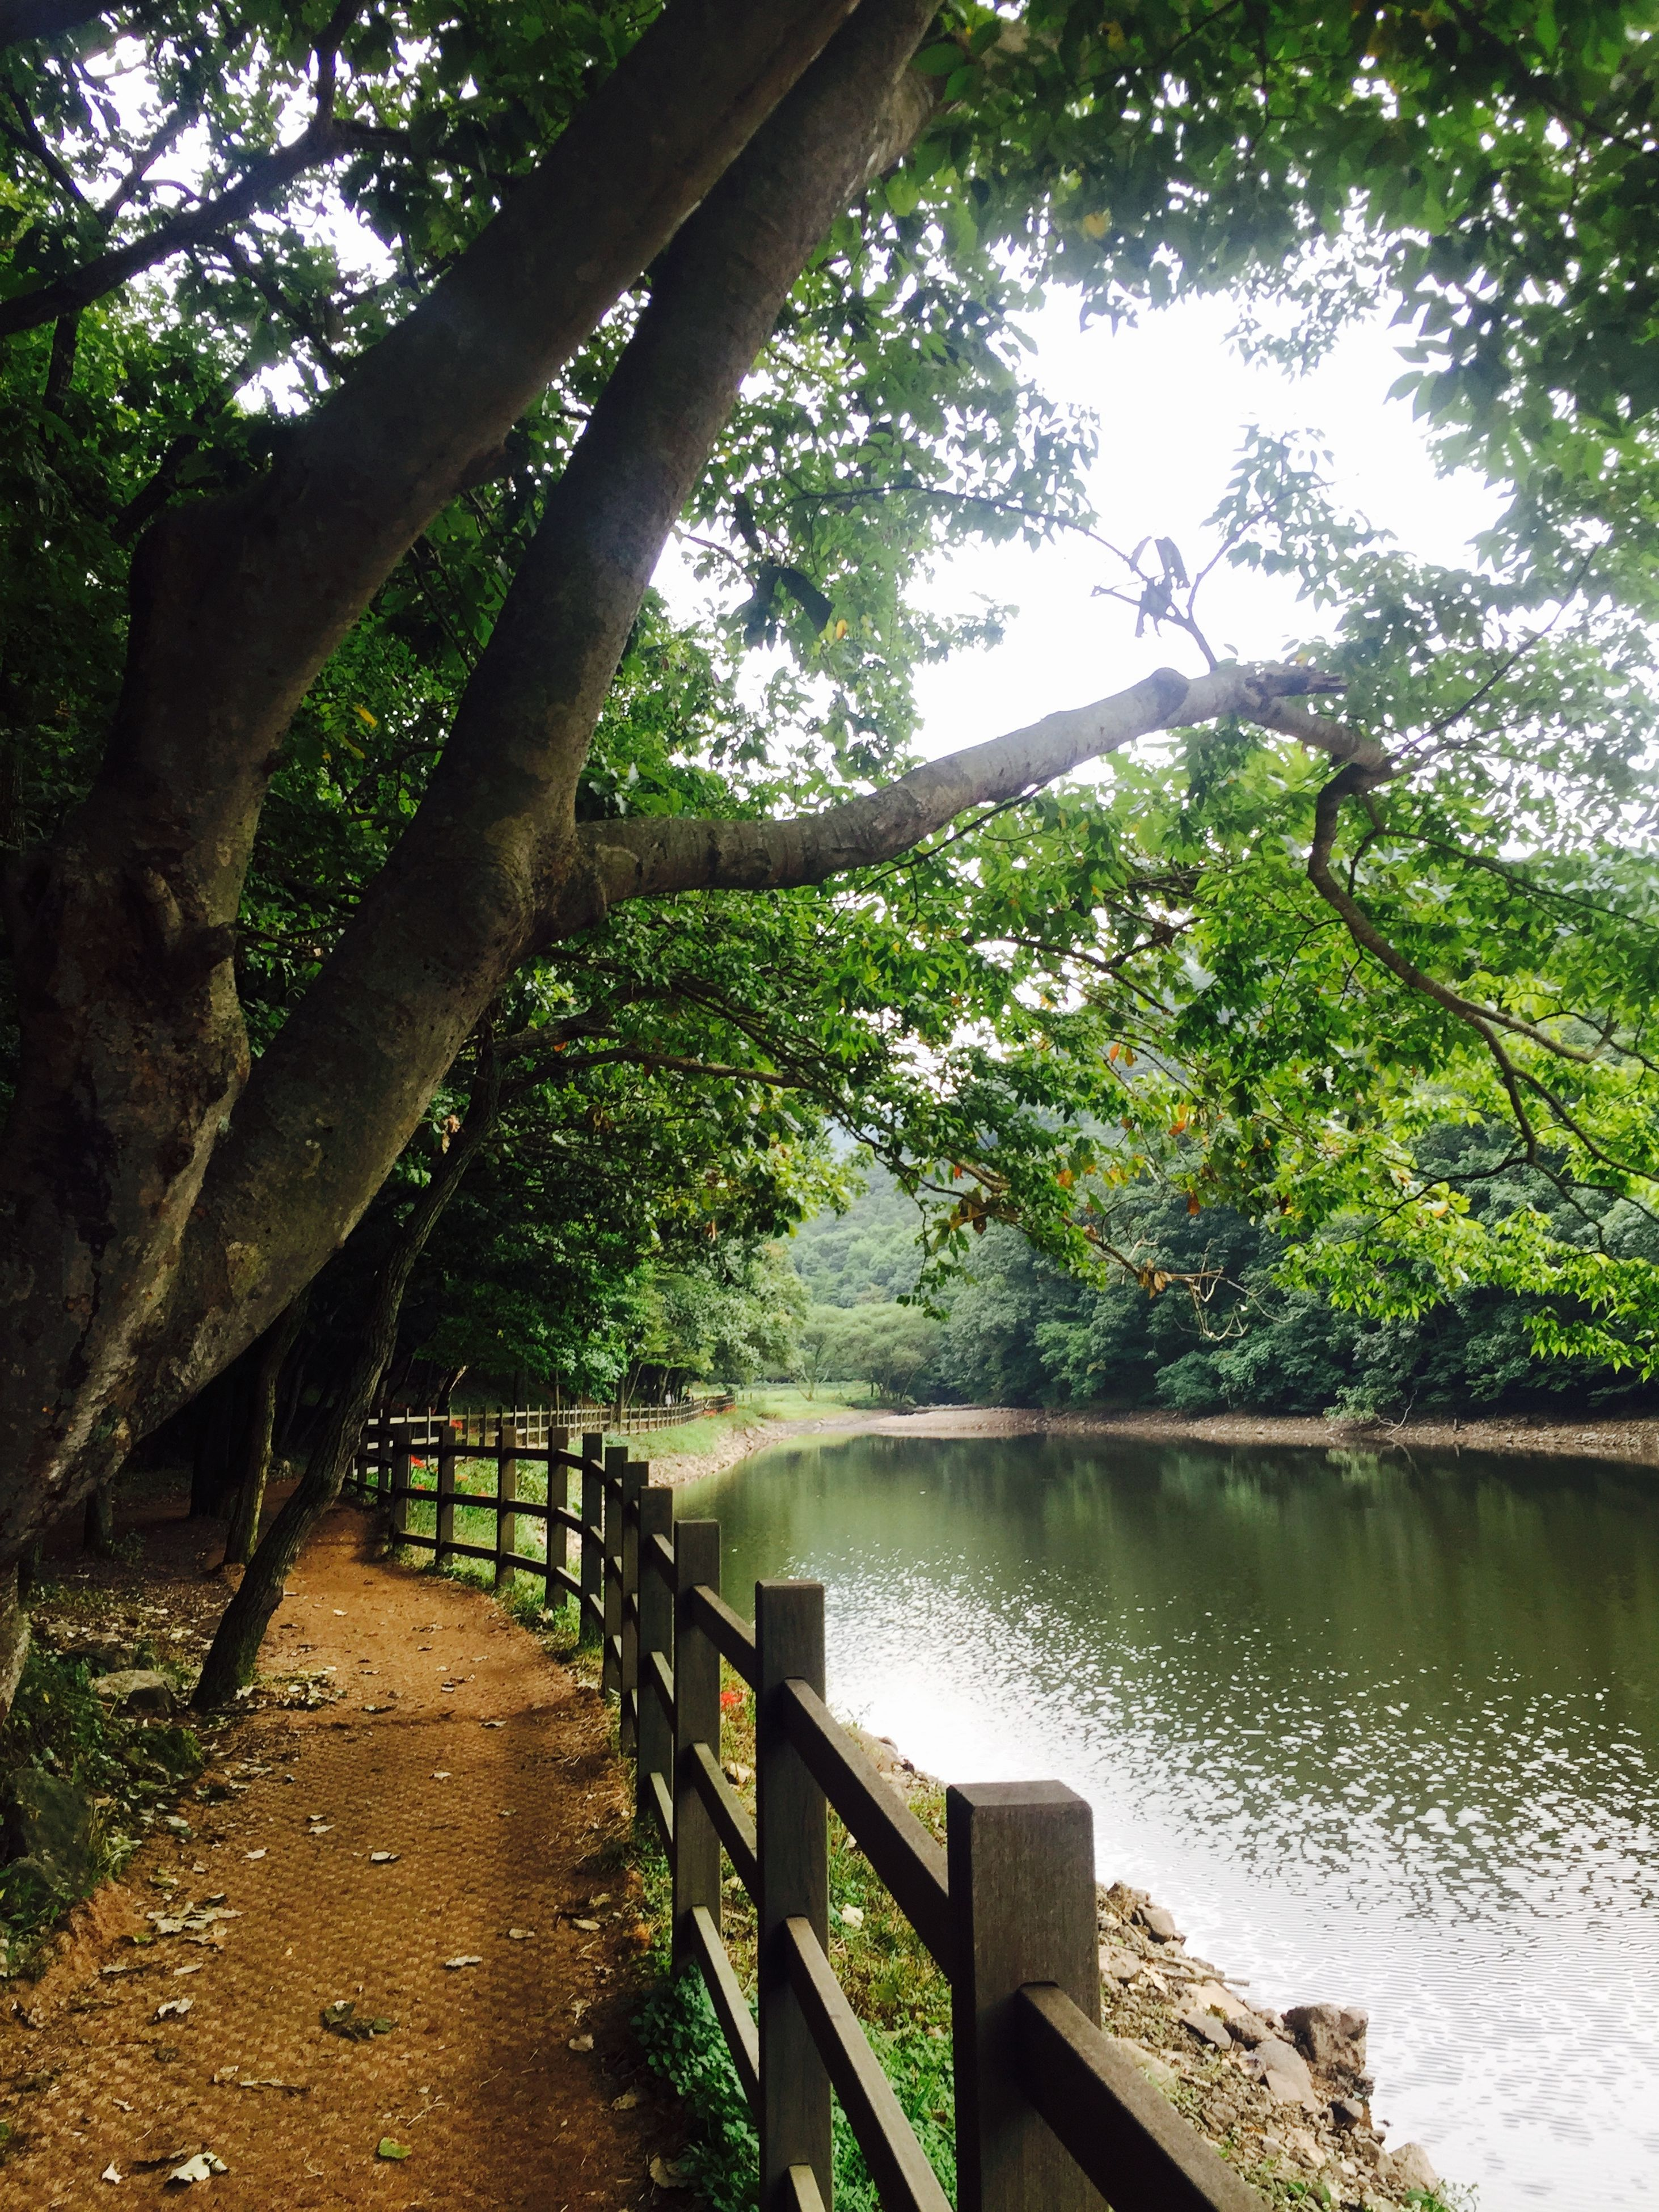 tree, water, tranquility, railing, tranquil scene, lake, nature, beauty in nature, scenics, river, growth, branch, footbridge, forest, wood - material, reflection, day, idyllic, bridge - man made structure, green color